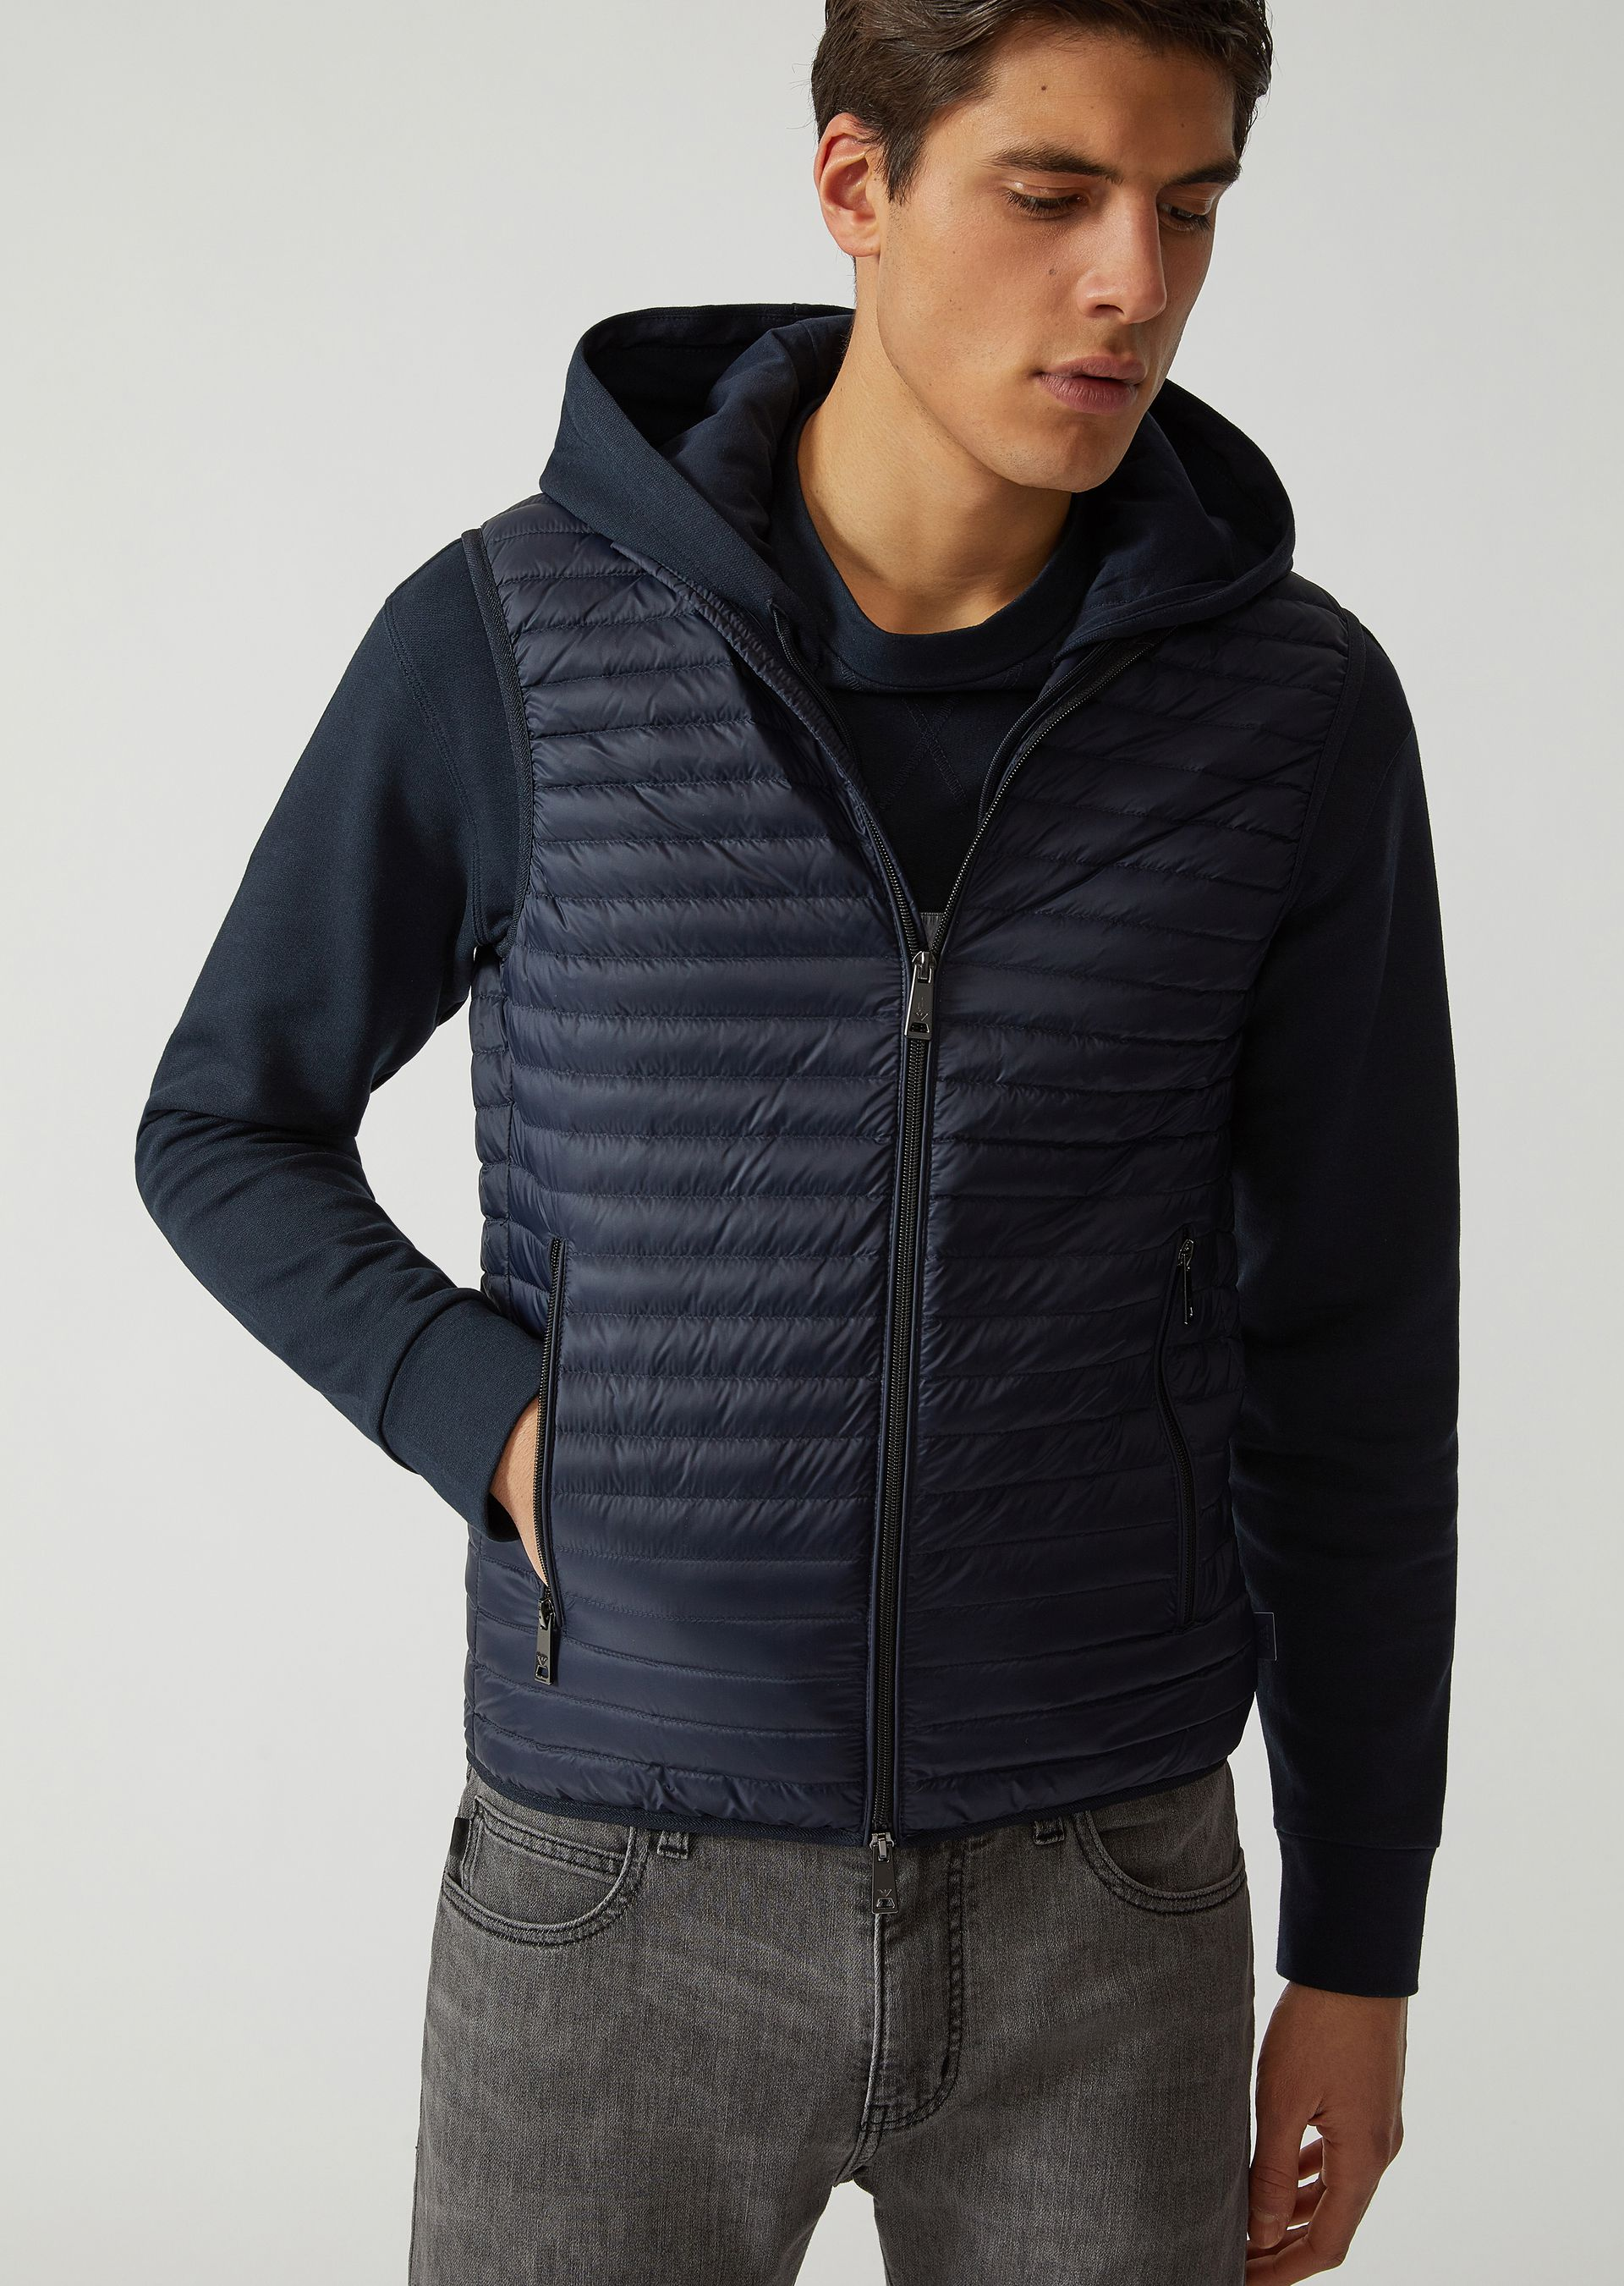 Emporio Armani  DOWN VESTS - ITEM 41782969